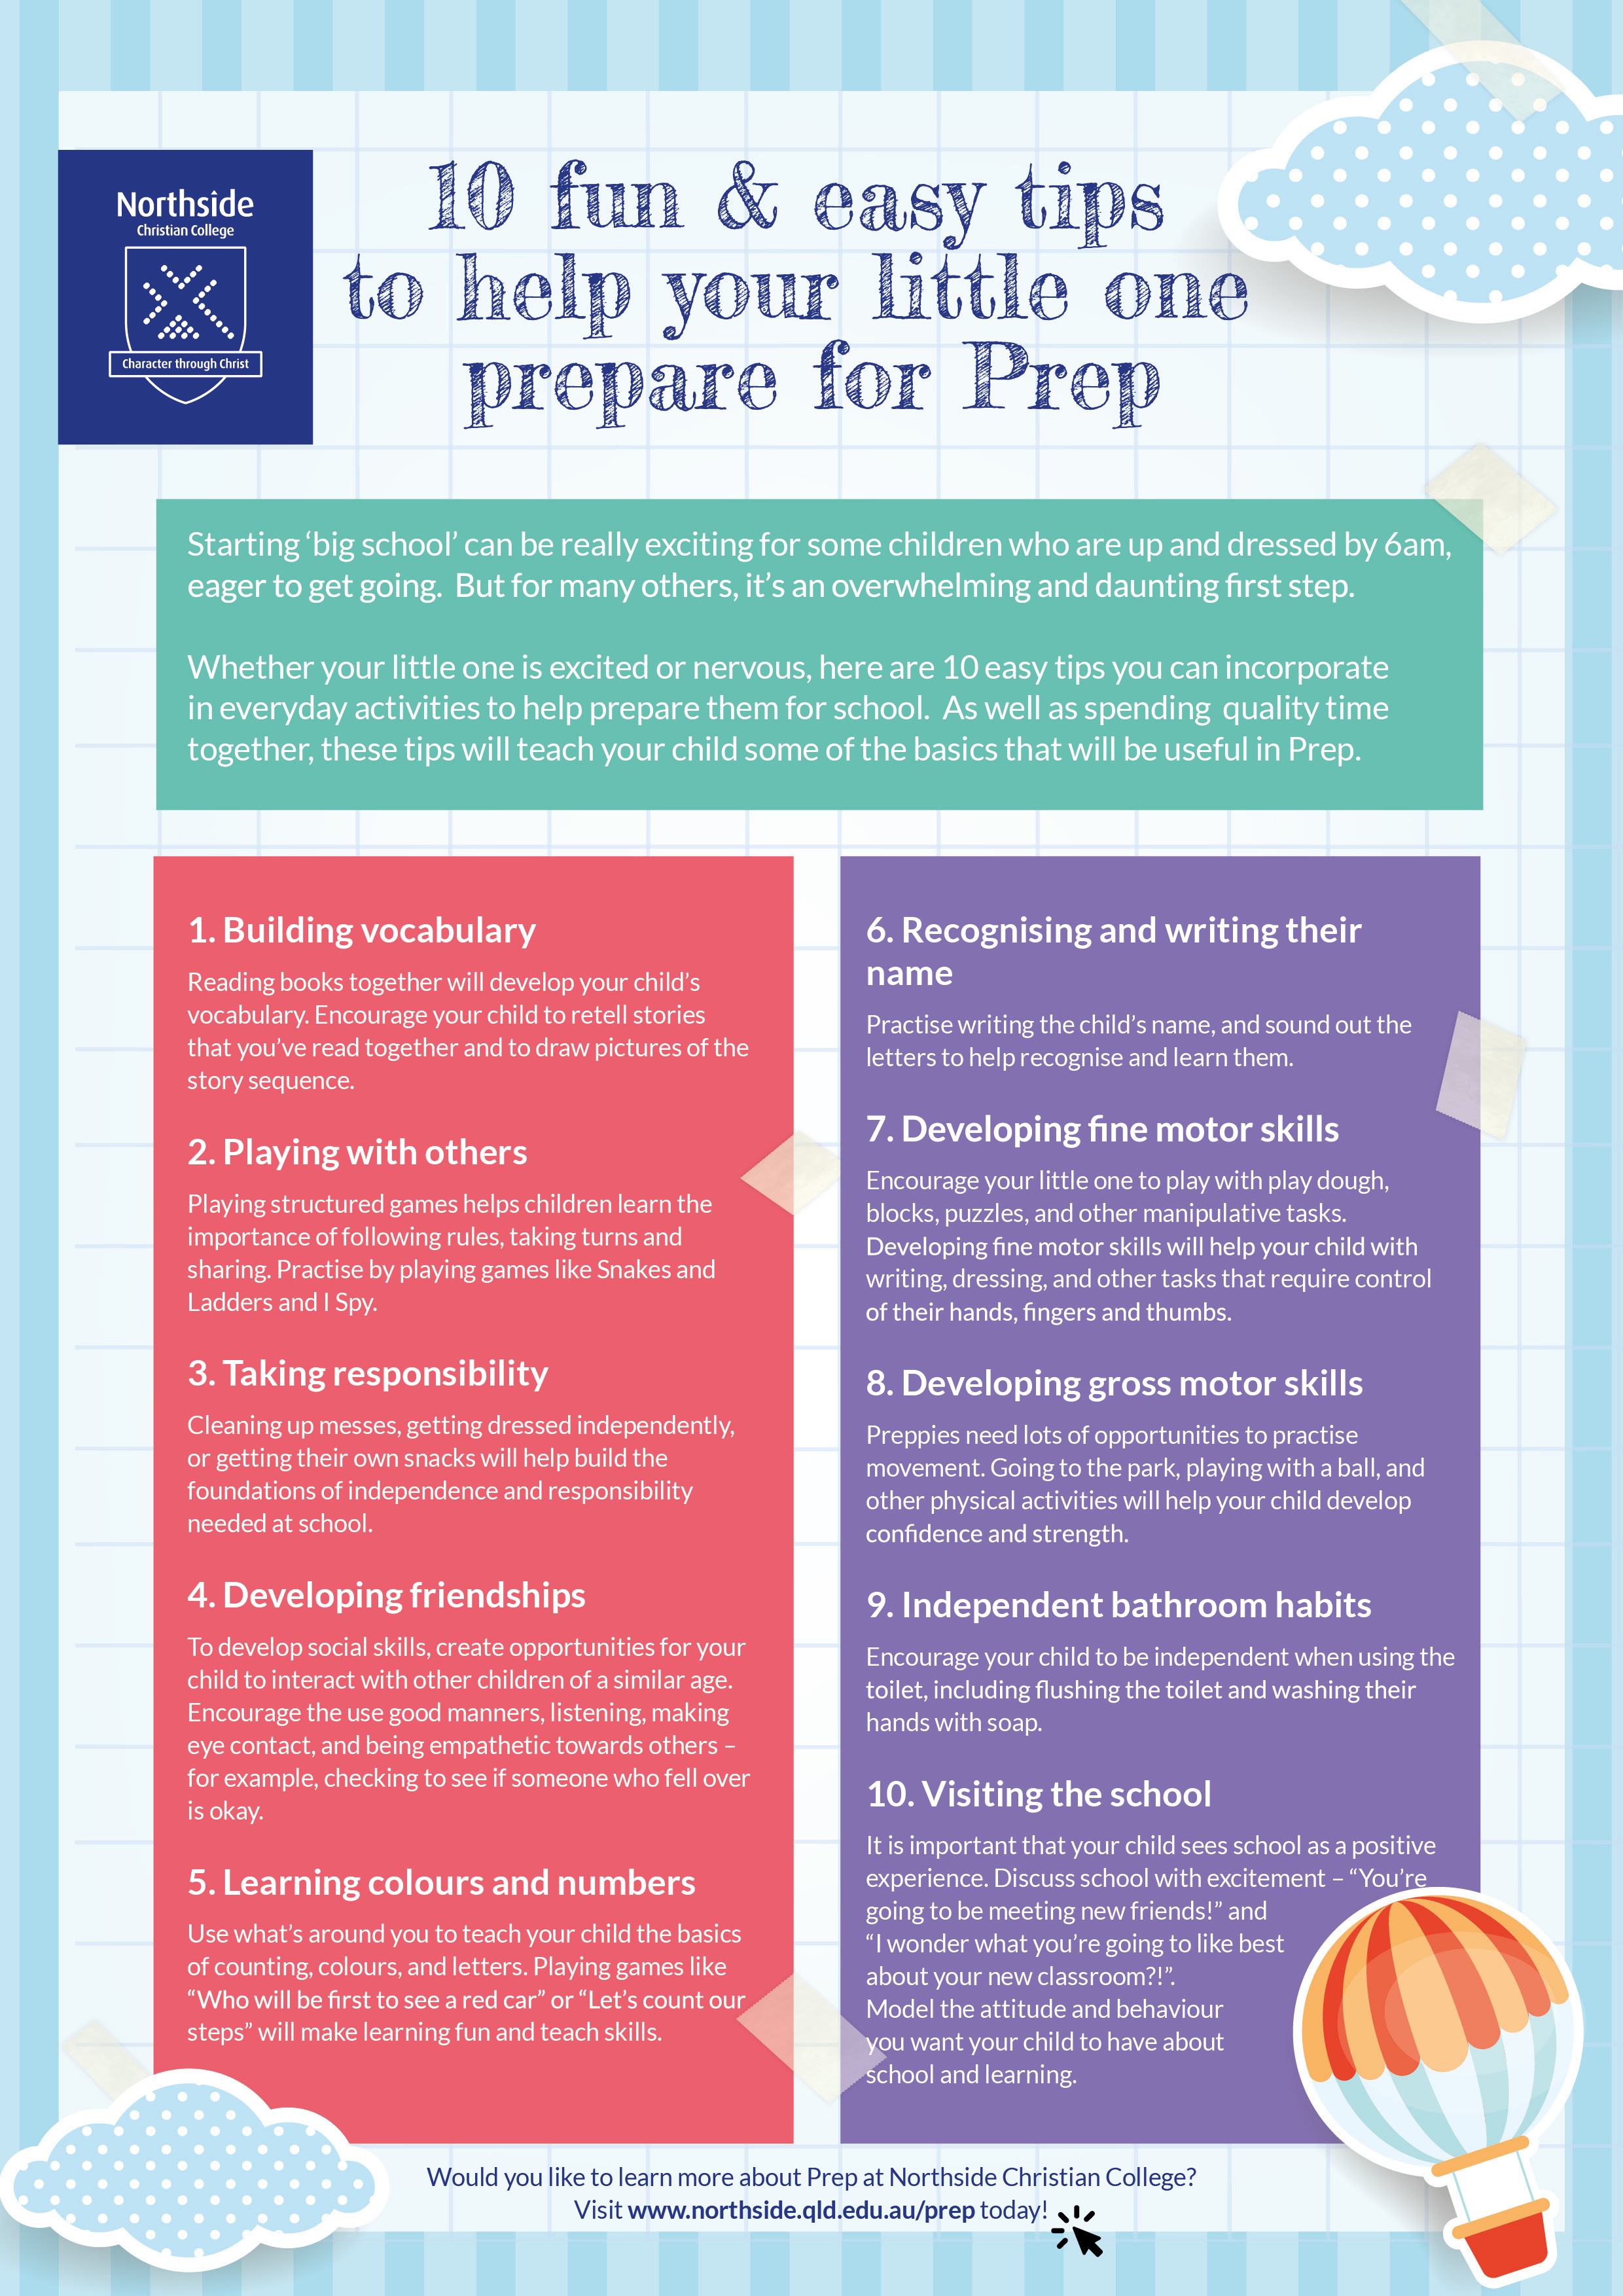 10 Tips to Prepare for Prep - Northside Christian College